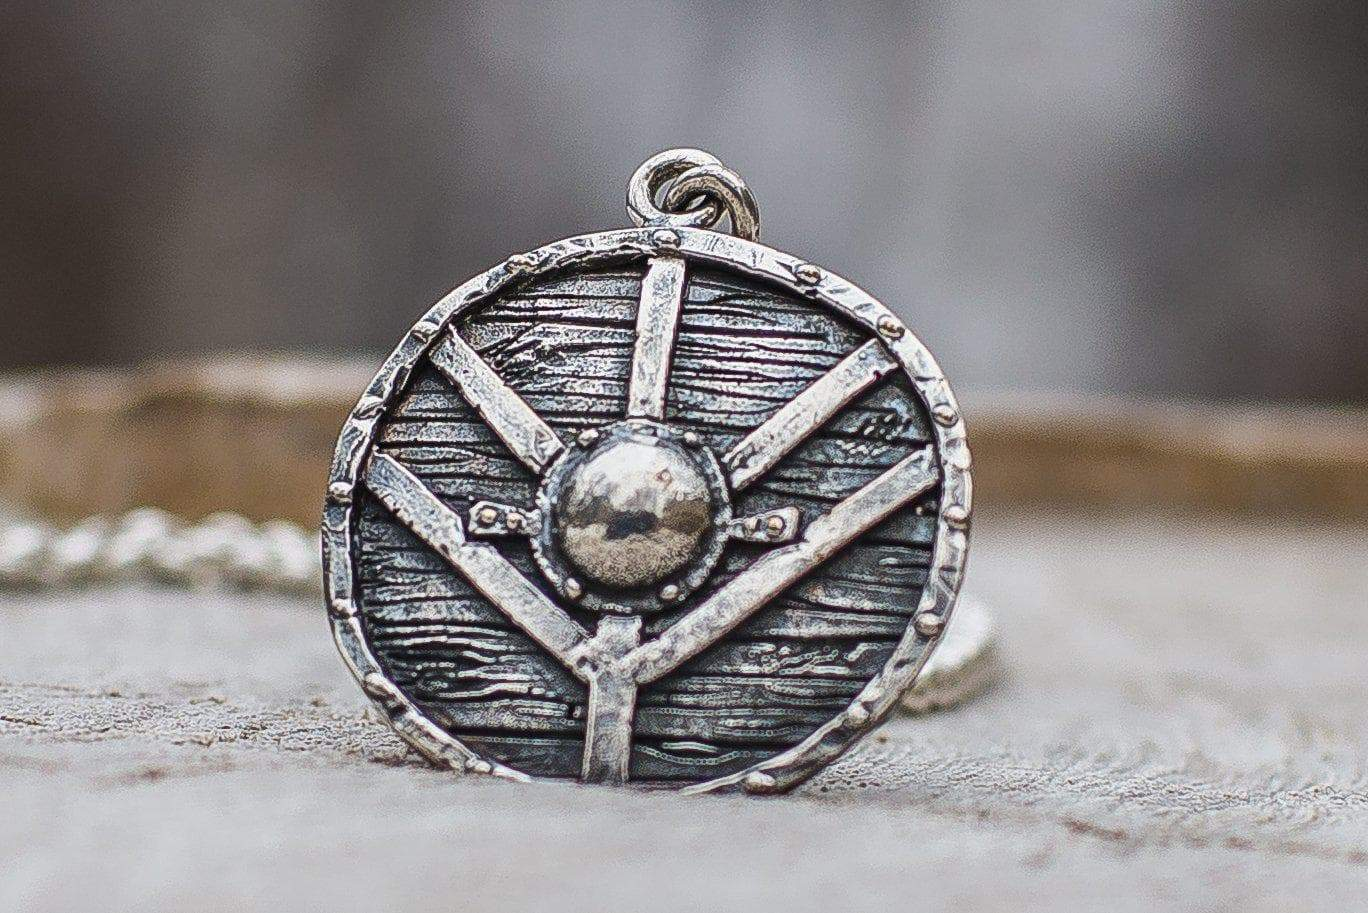 Vikings Lagertha's Shield Unique Handcrafted Pendant